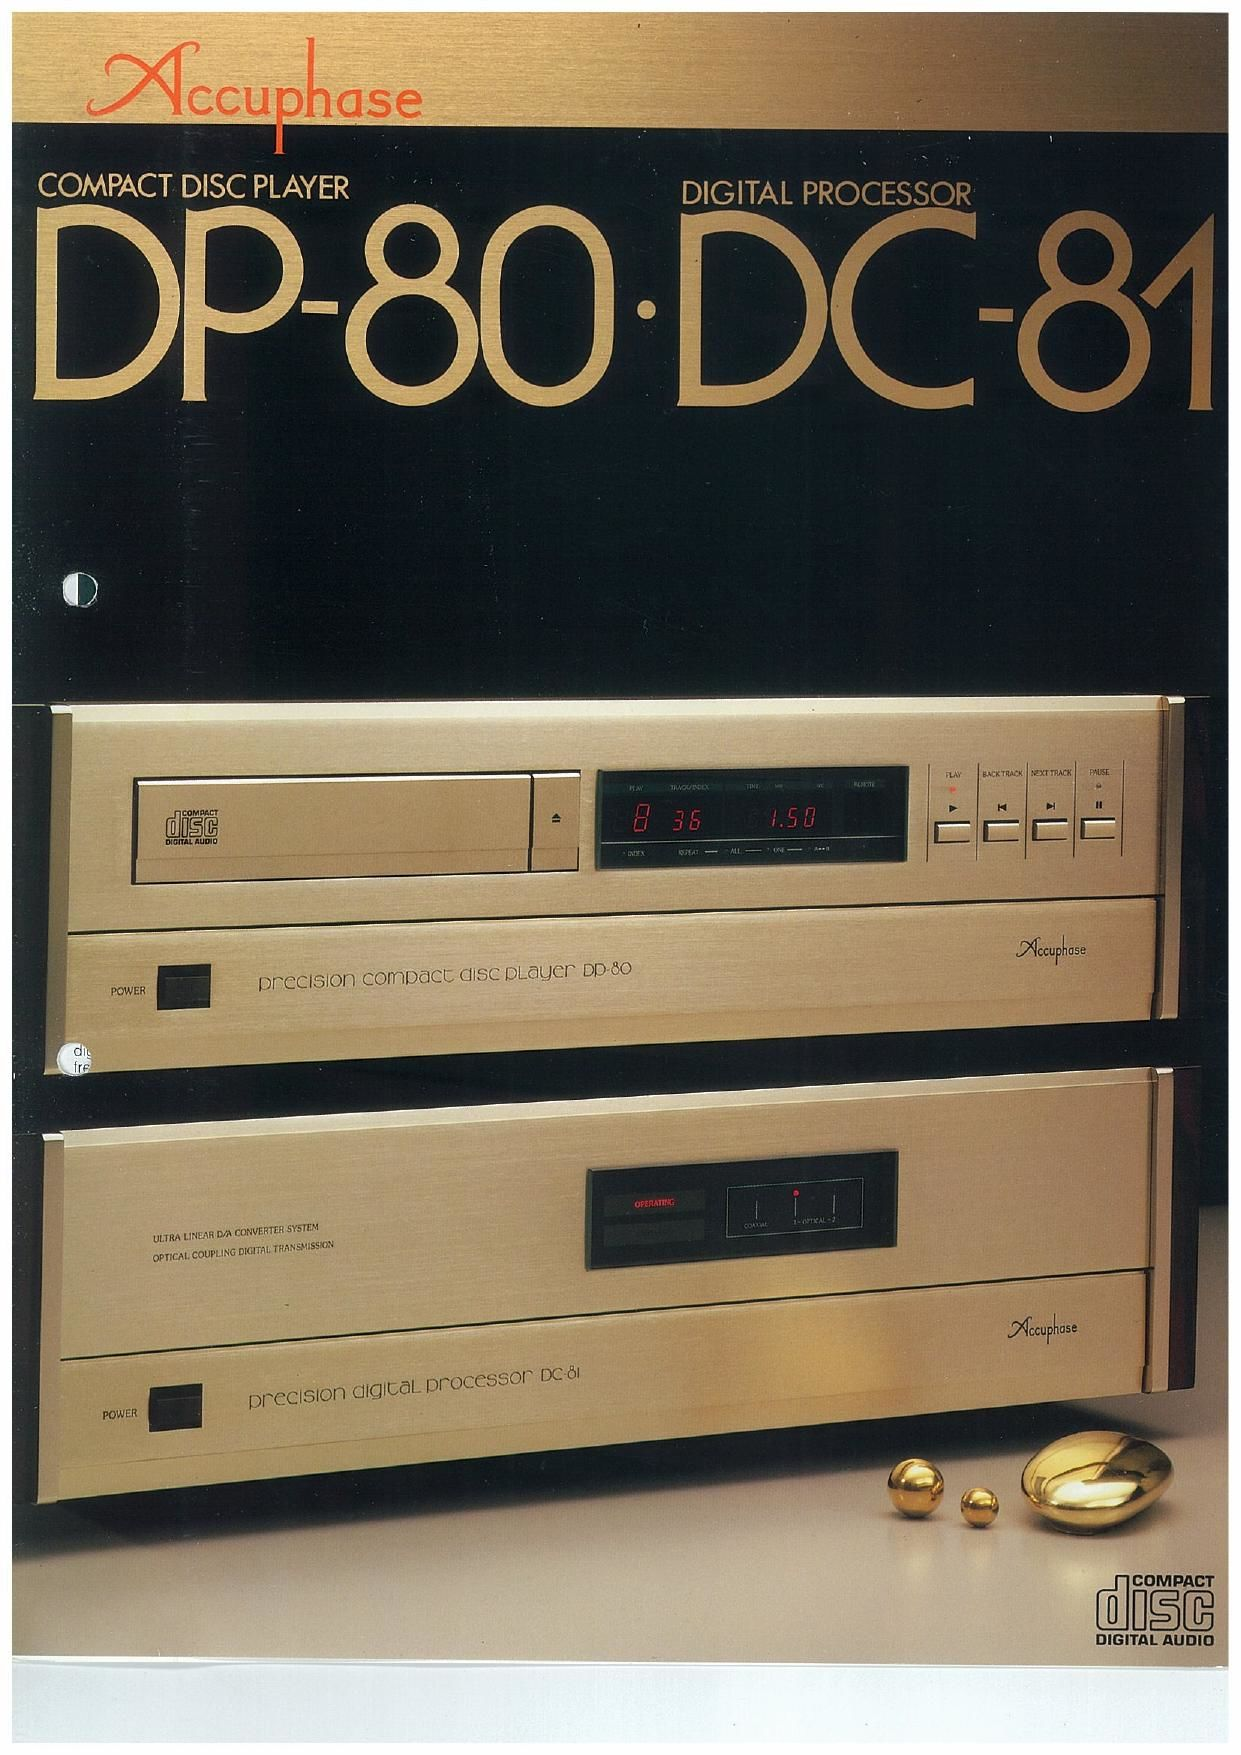 Accuphase DP 80 Brochure